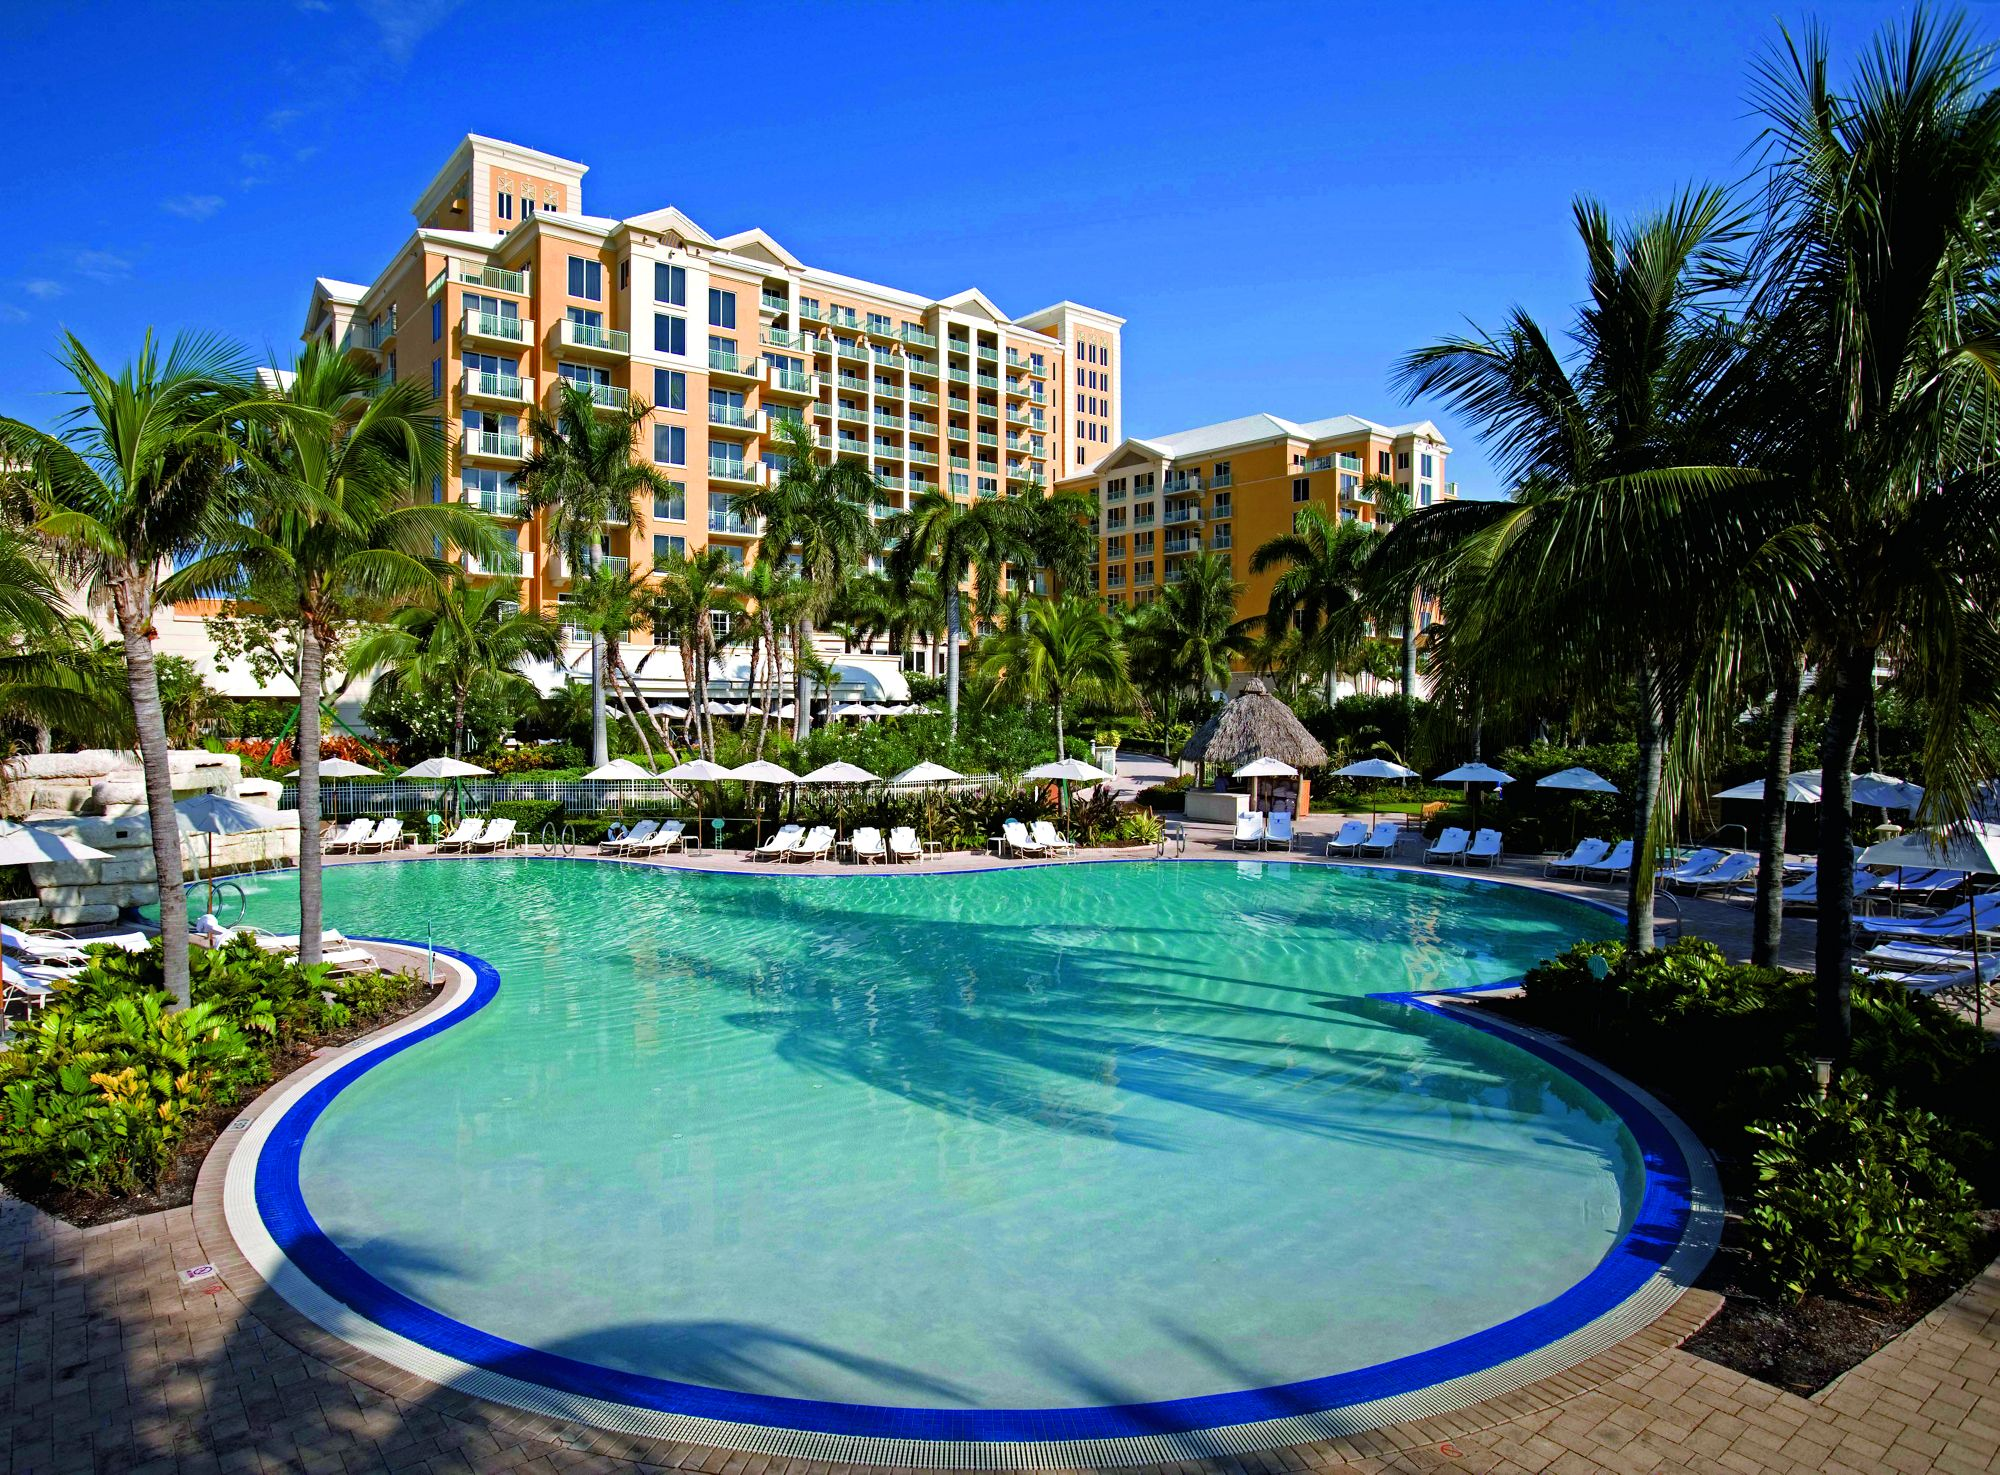 Ritz-Carlton Key Biscayne